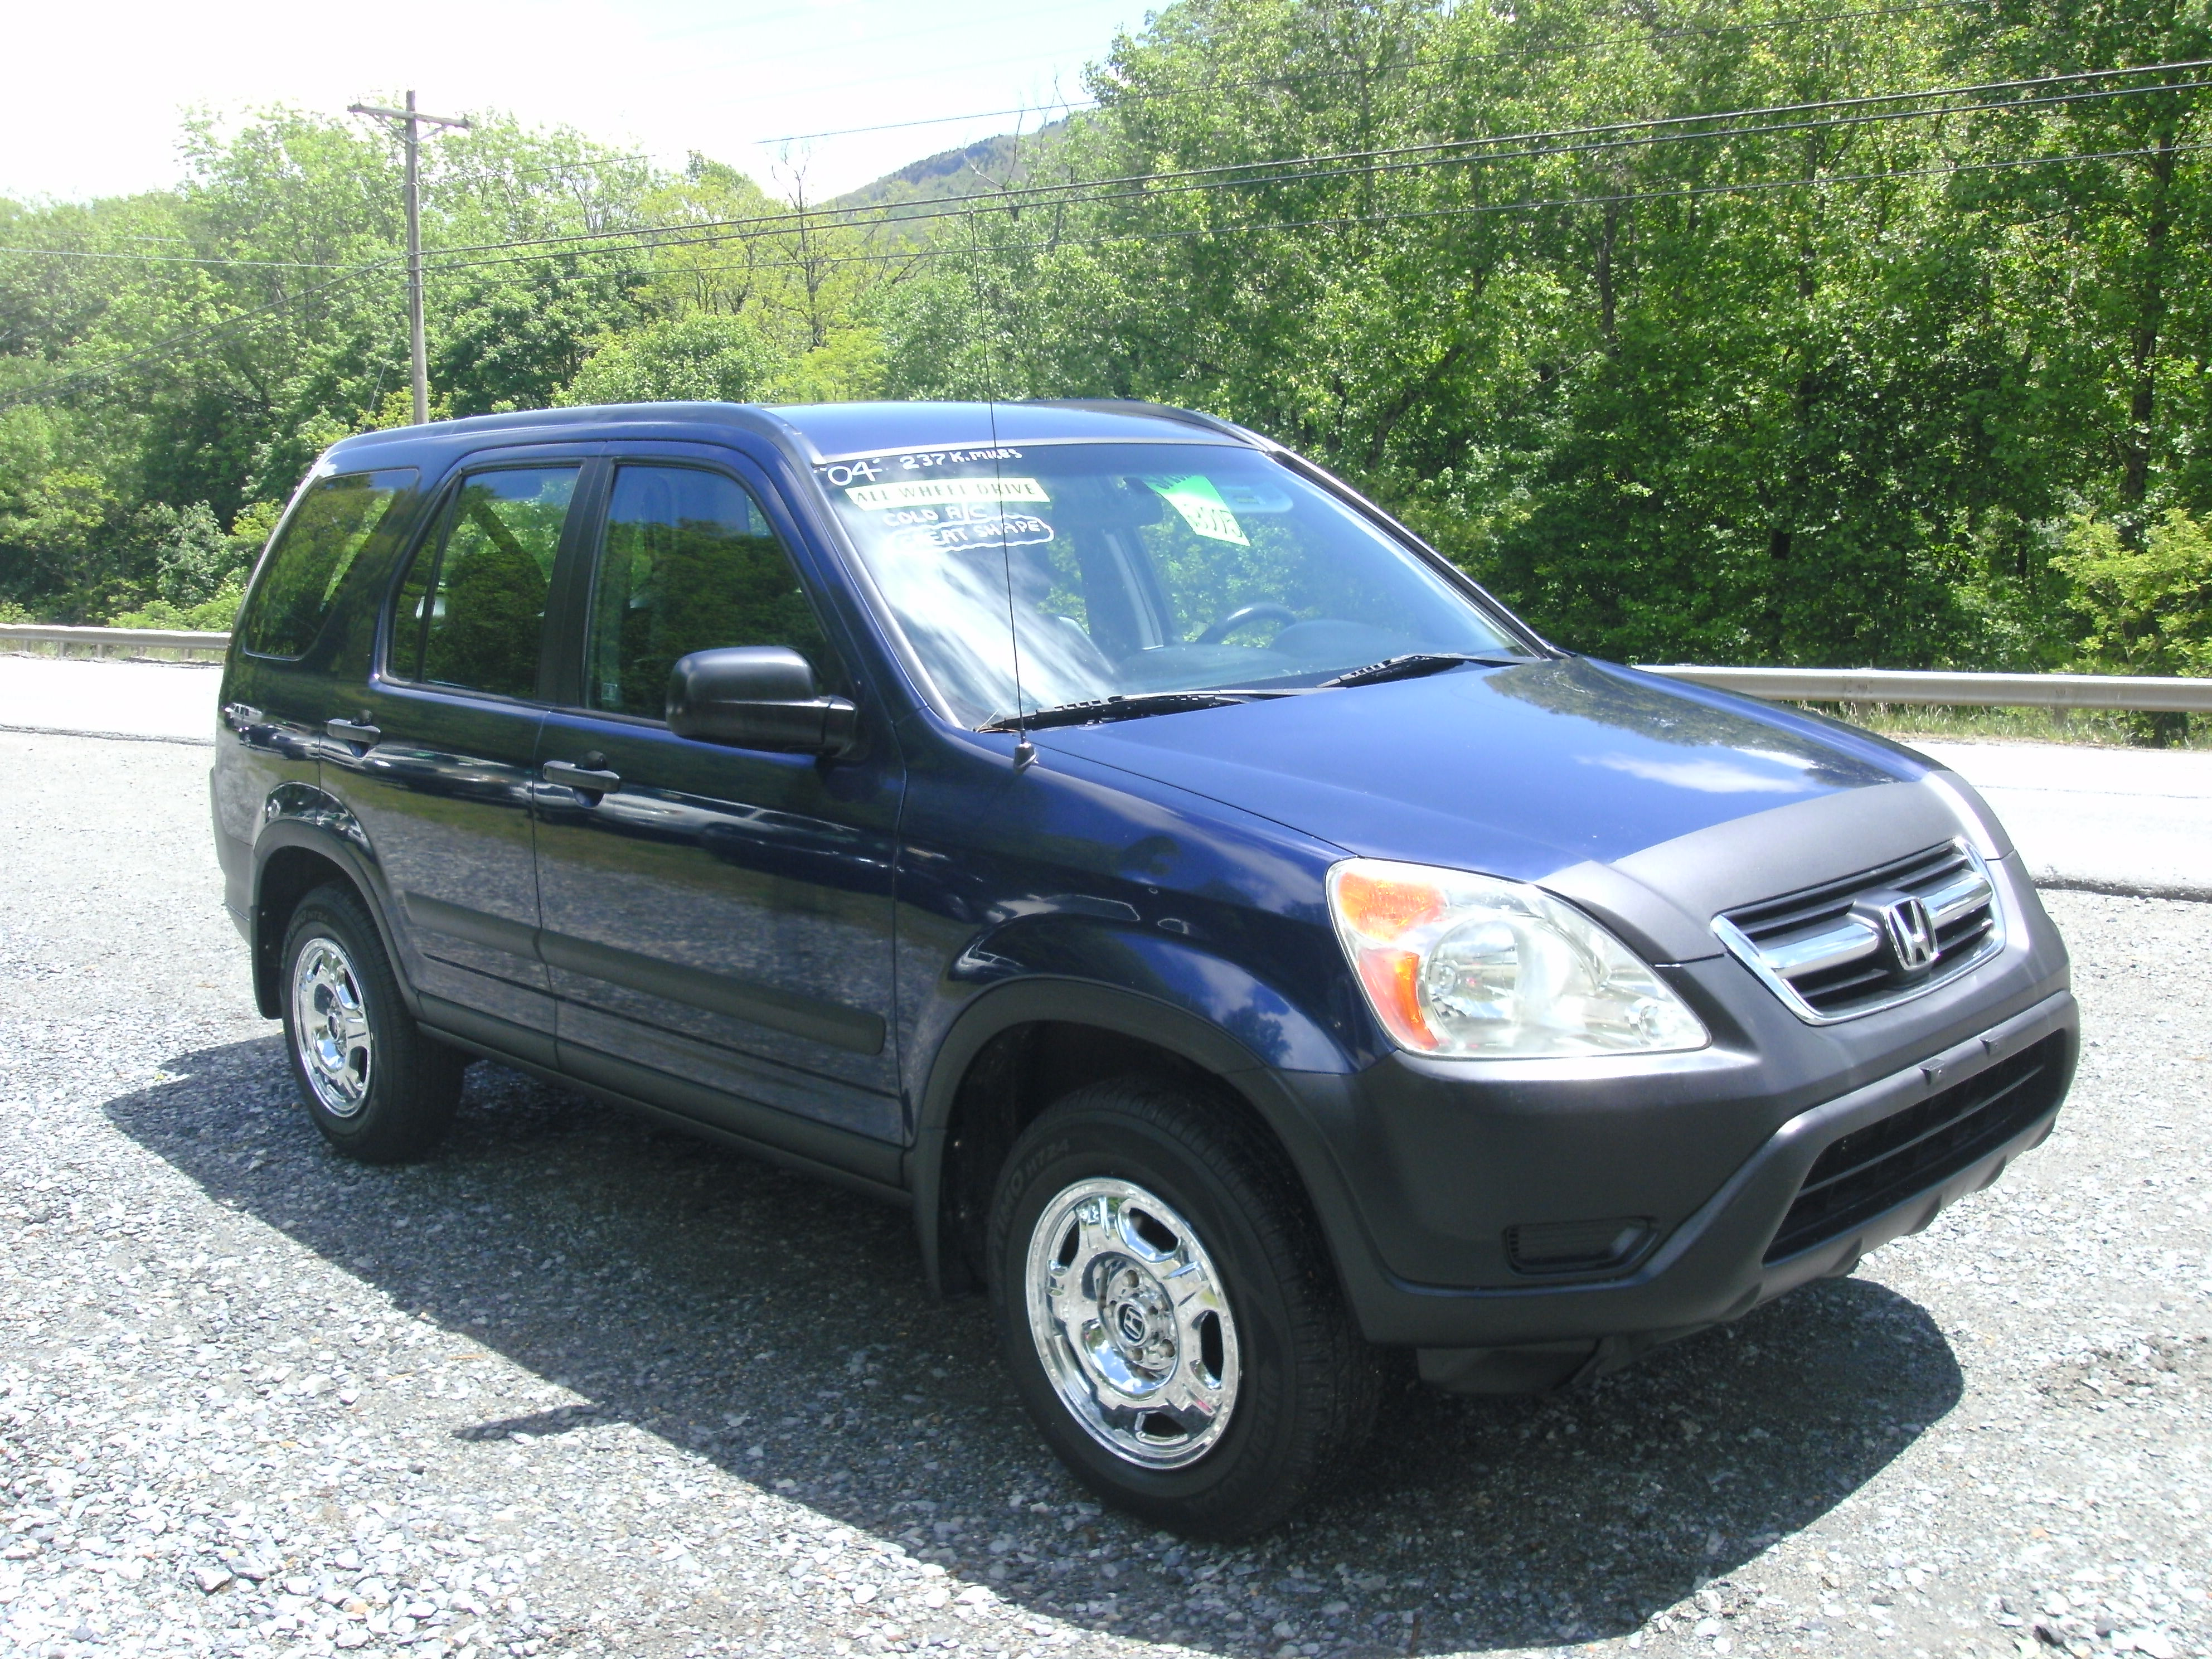 Joe s Used Cars Cars trucks SUVs for sale in the High Country